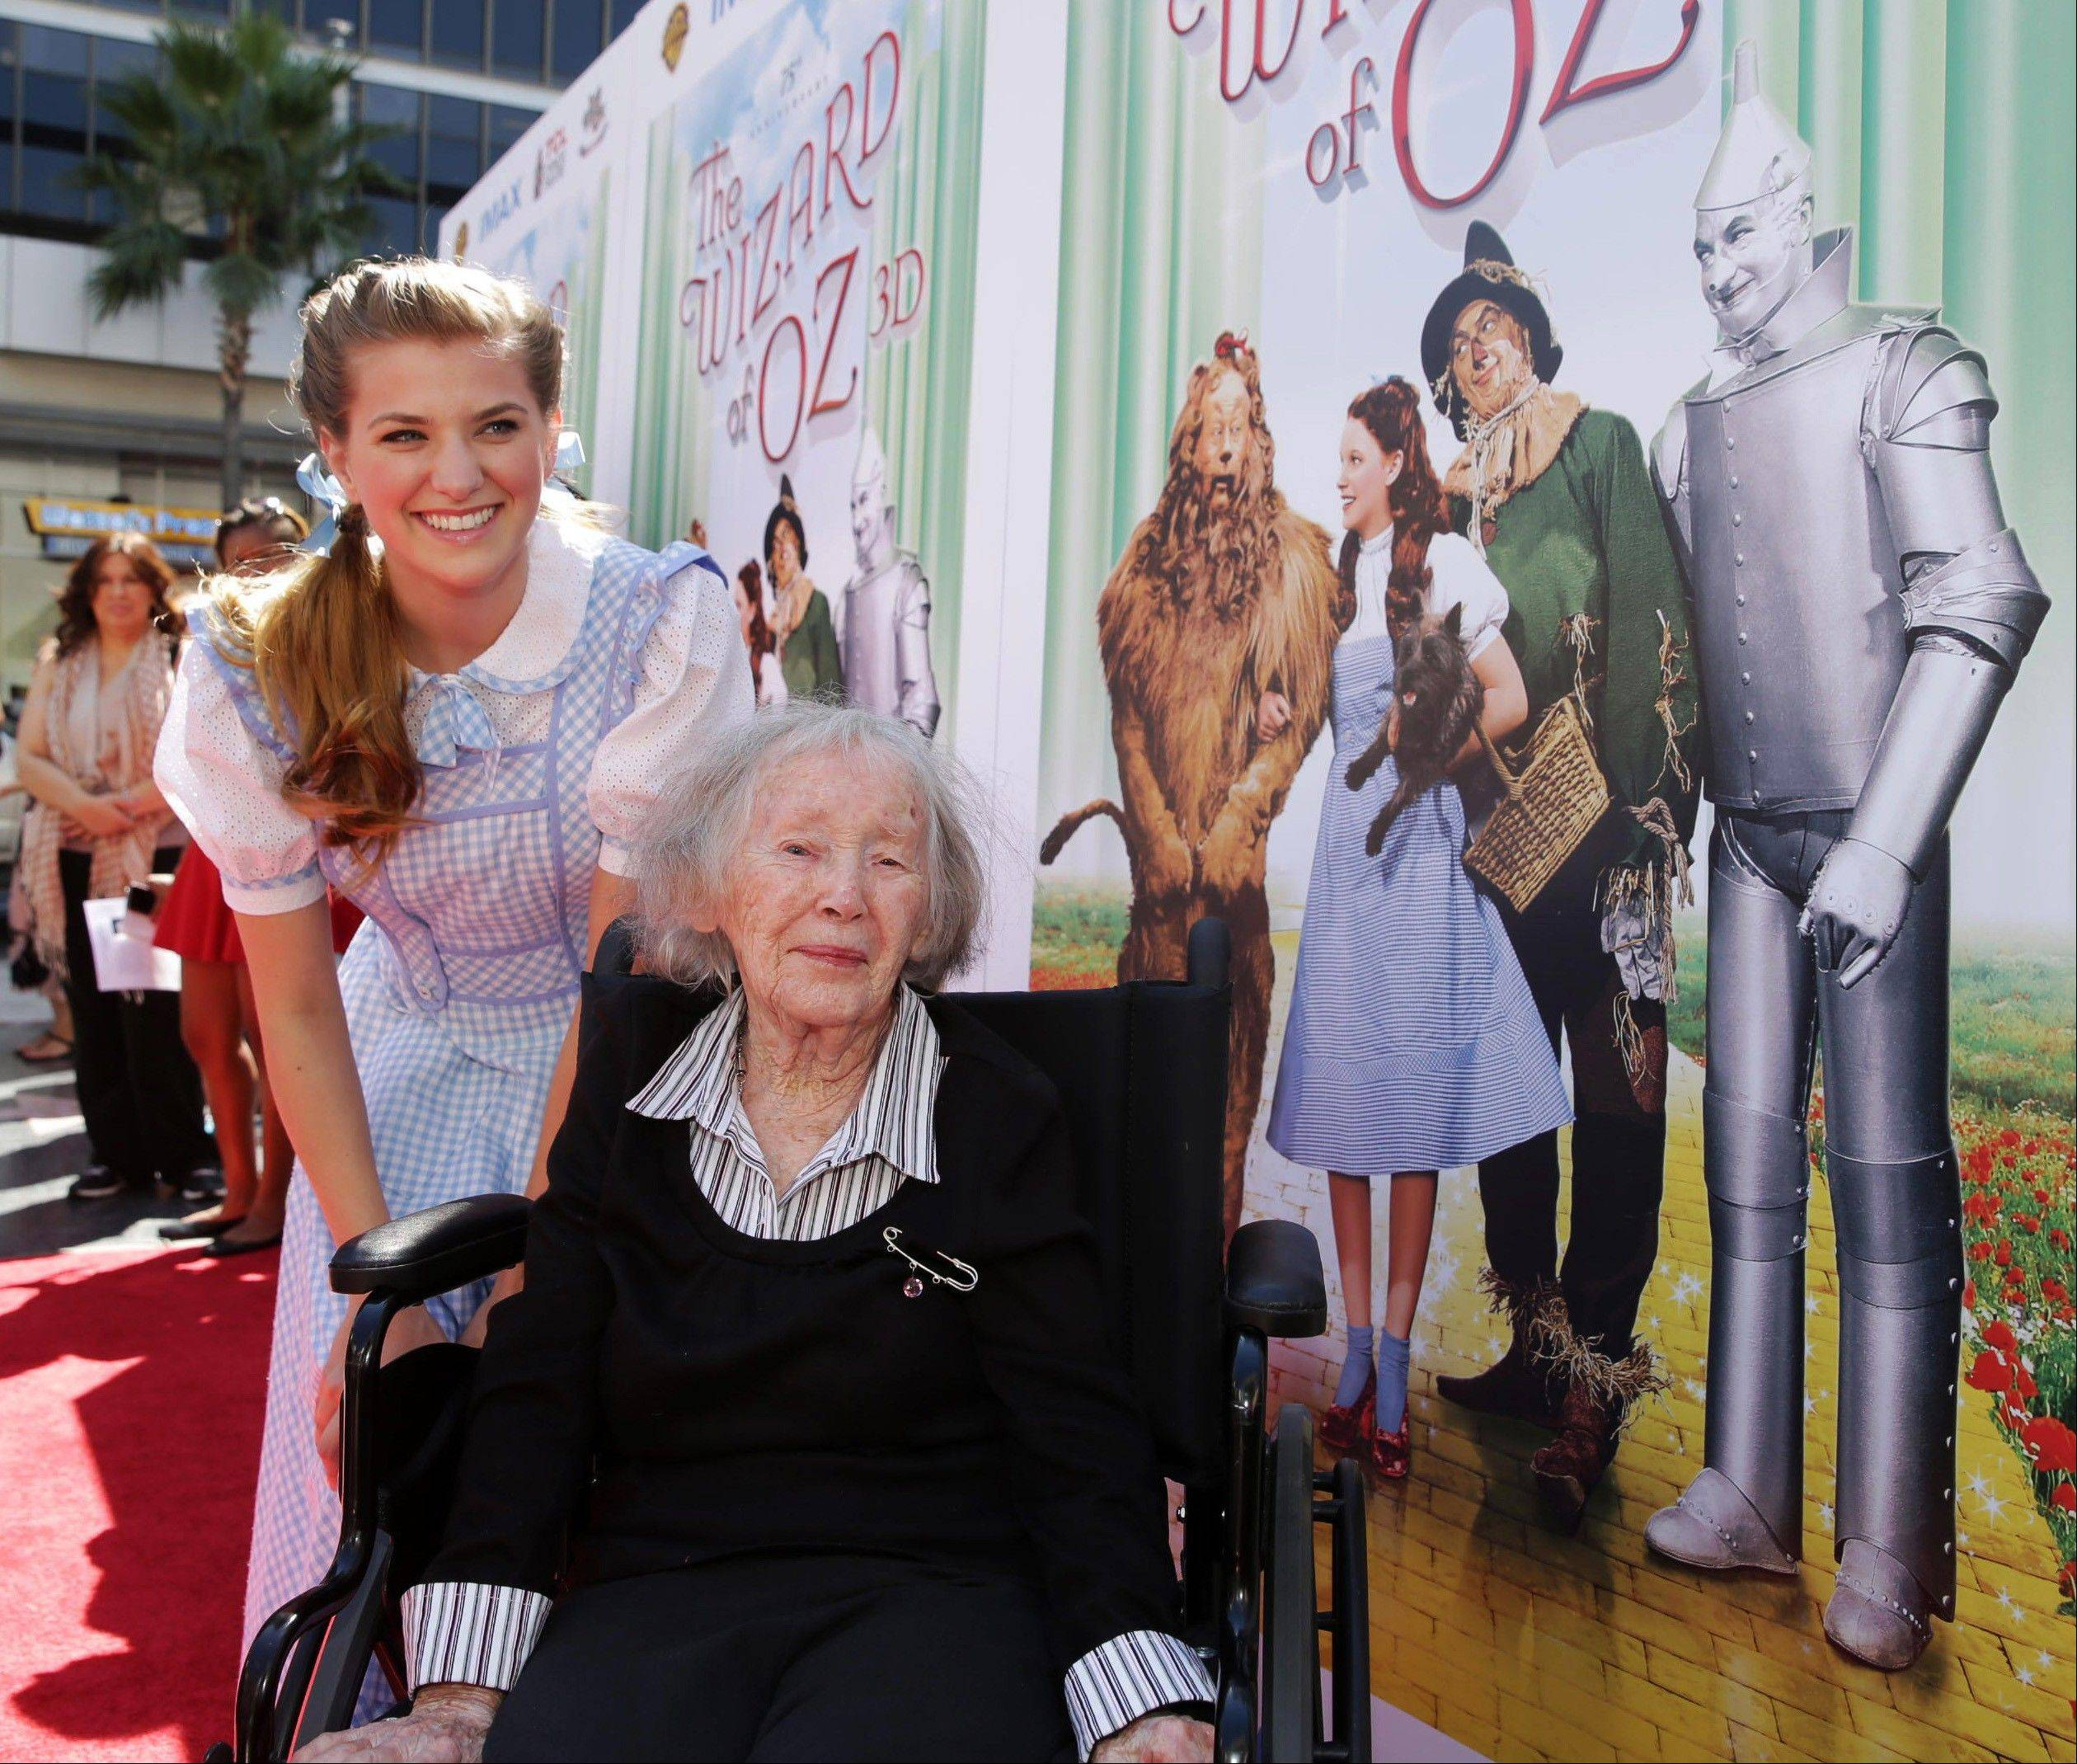 ASSOCIATED PRESS This Sept. 15, 2013 photo shows Danielle Wade, left, and Ruth Robinison Duccini at Warner Bros. world premiere screening of �The Wizard of Oz� in IMAX 3D and the grand opening of the newly converted TCL Chinese Theatre IMAX in the Hollywood section of Los Angeles. Duccini, one of the original Munchkins from the 1939 movie �The Wizard of Oz,� died Thursday. She was 95.